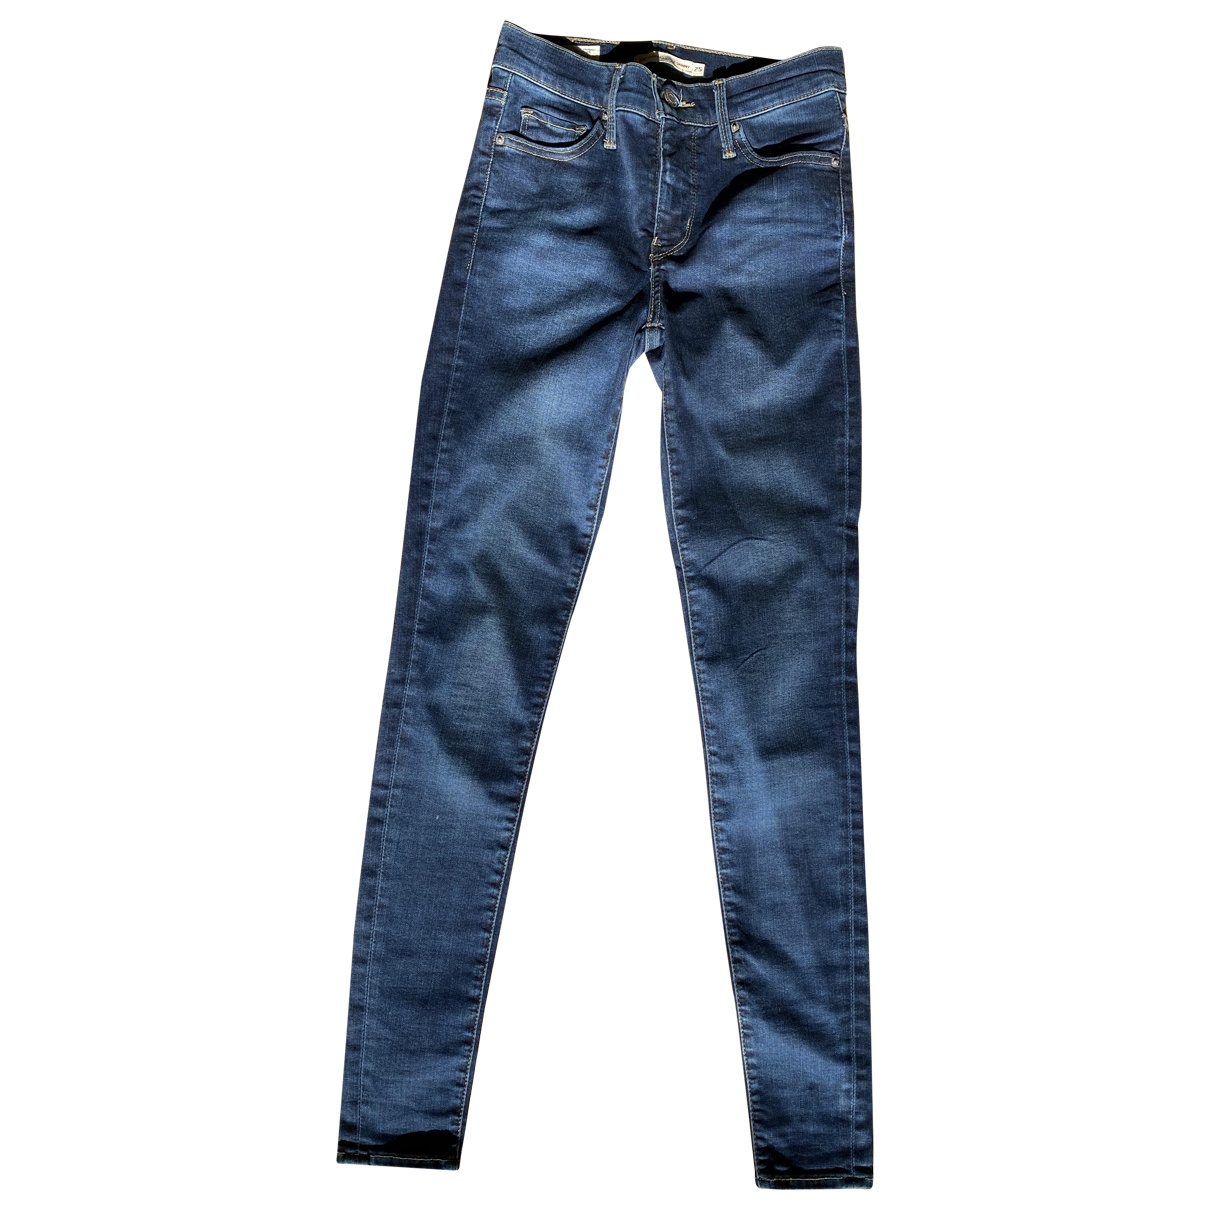 Levi's N Navy Cotton - elasthane Jeans for Women 25 US